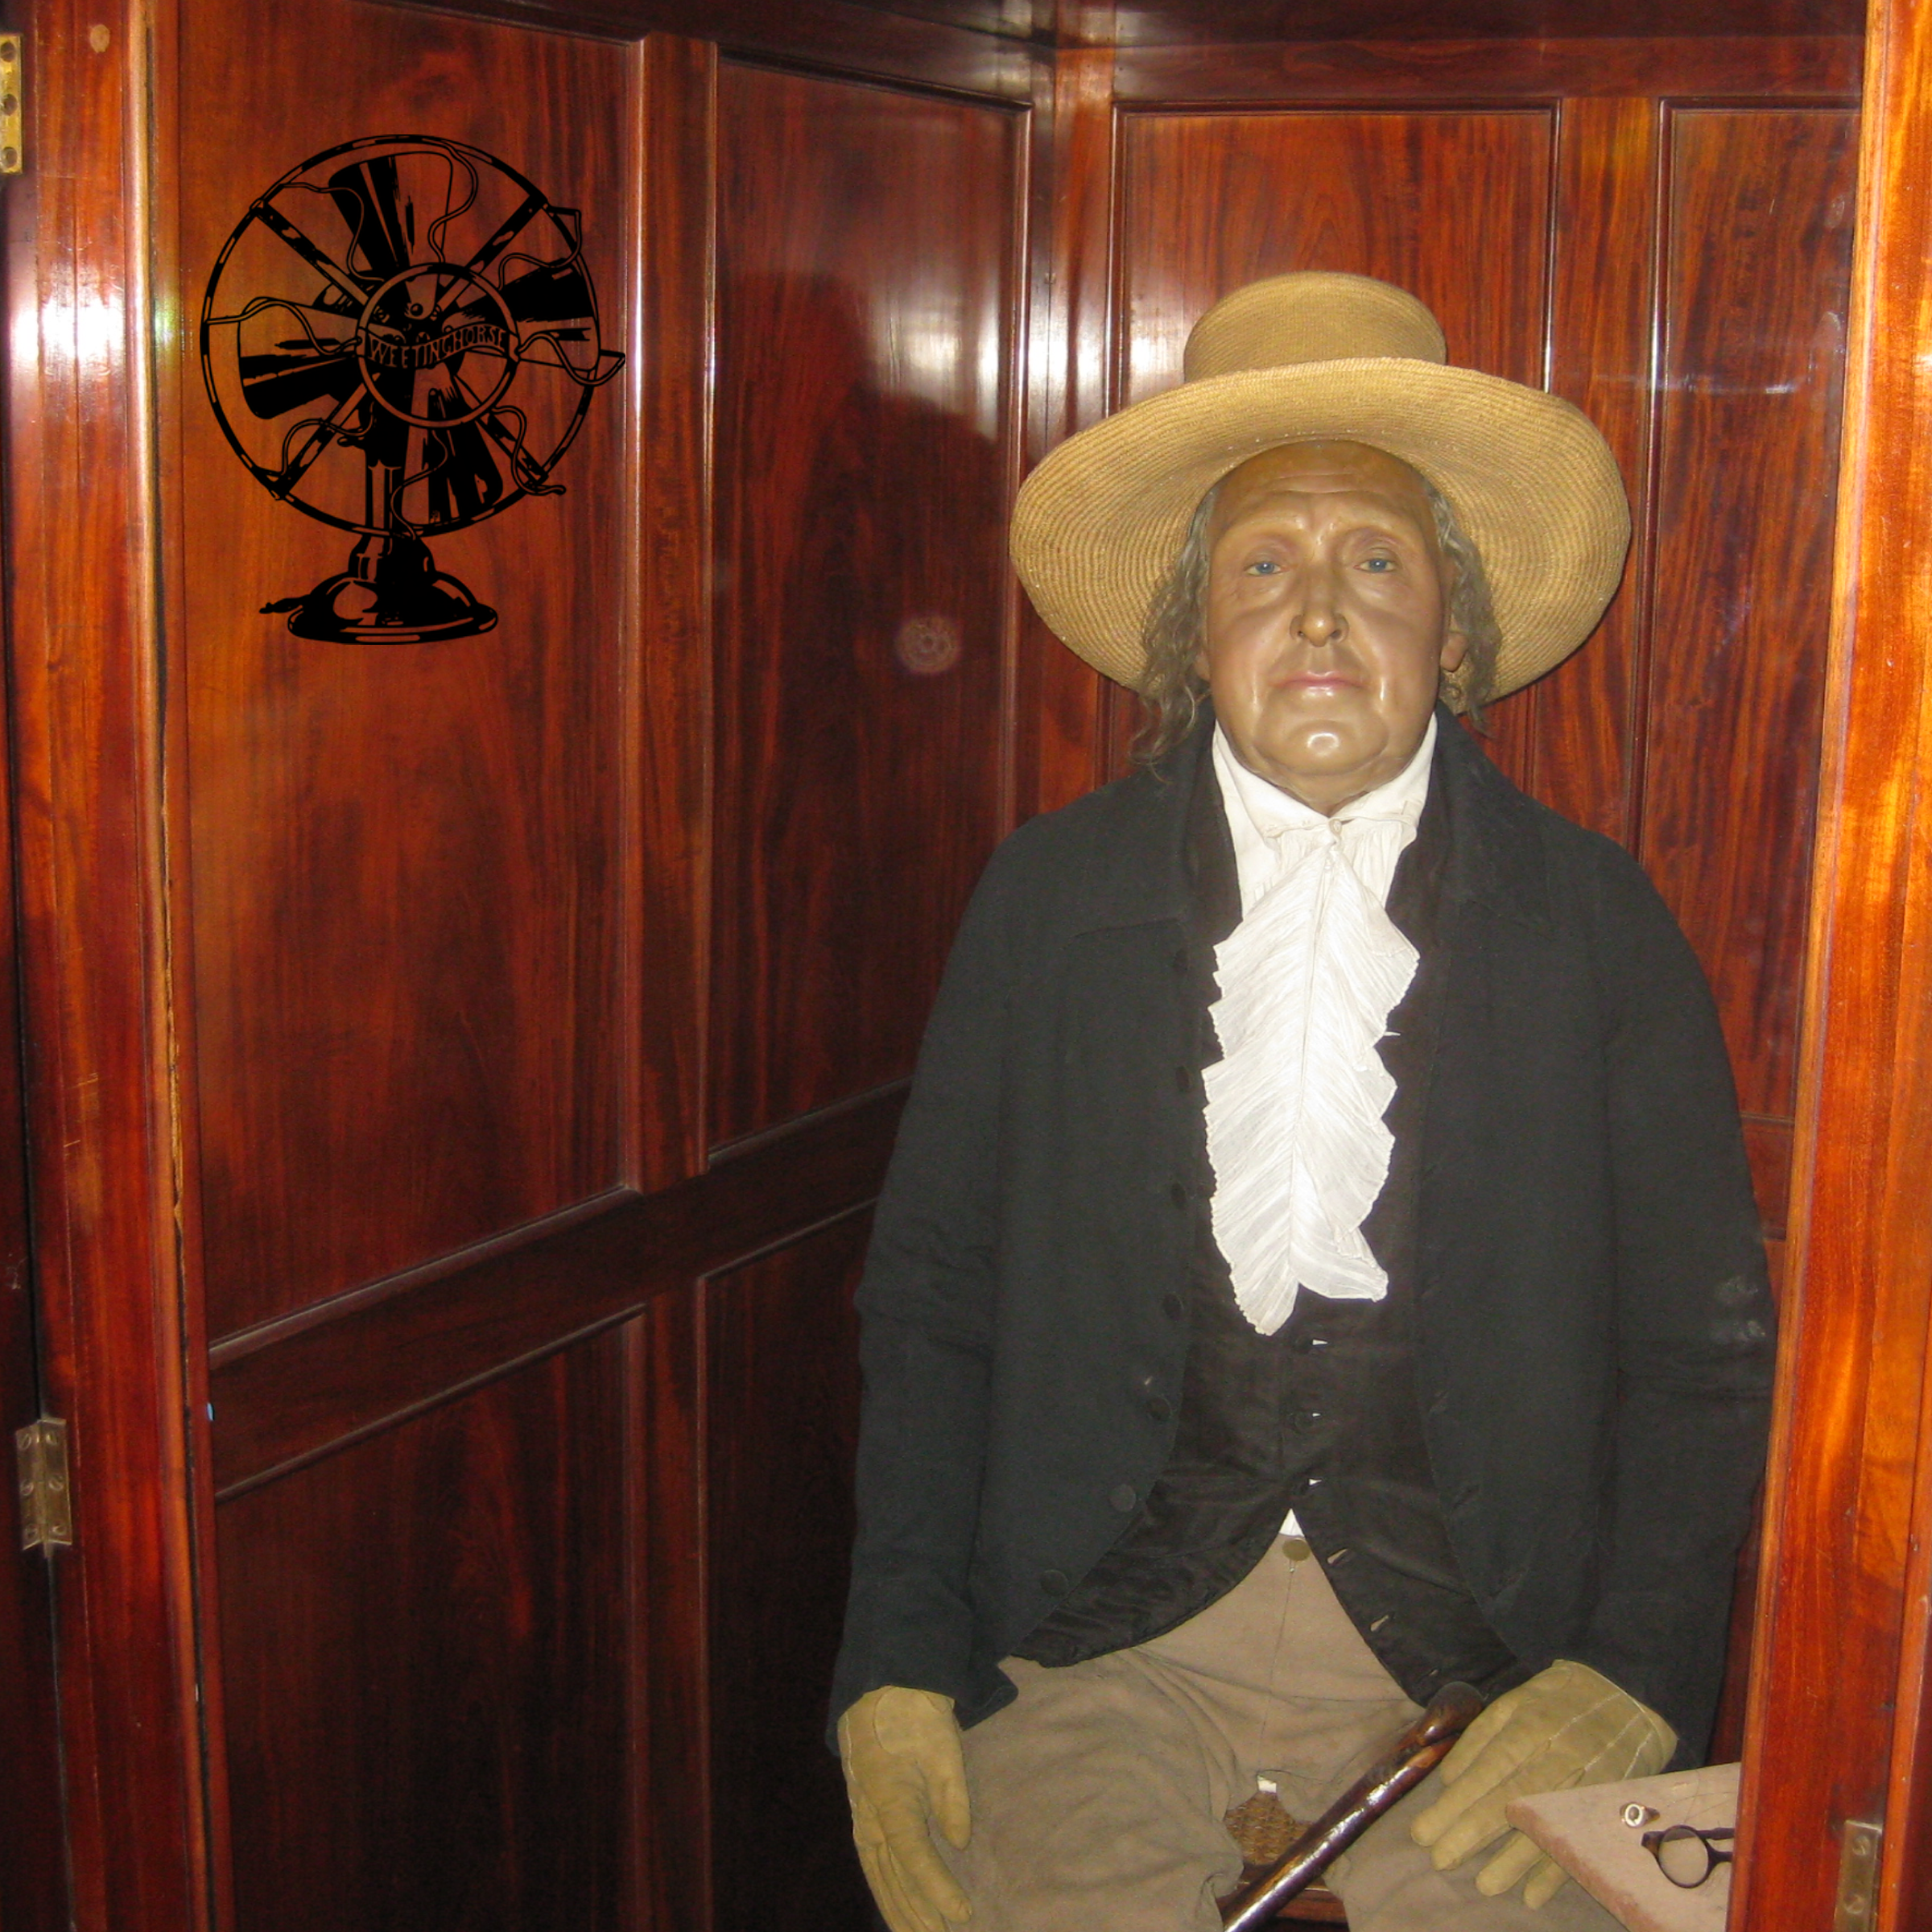 Episode 19's cover: Jeremy Bentham's preserved body, as displayed at University College London.